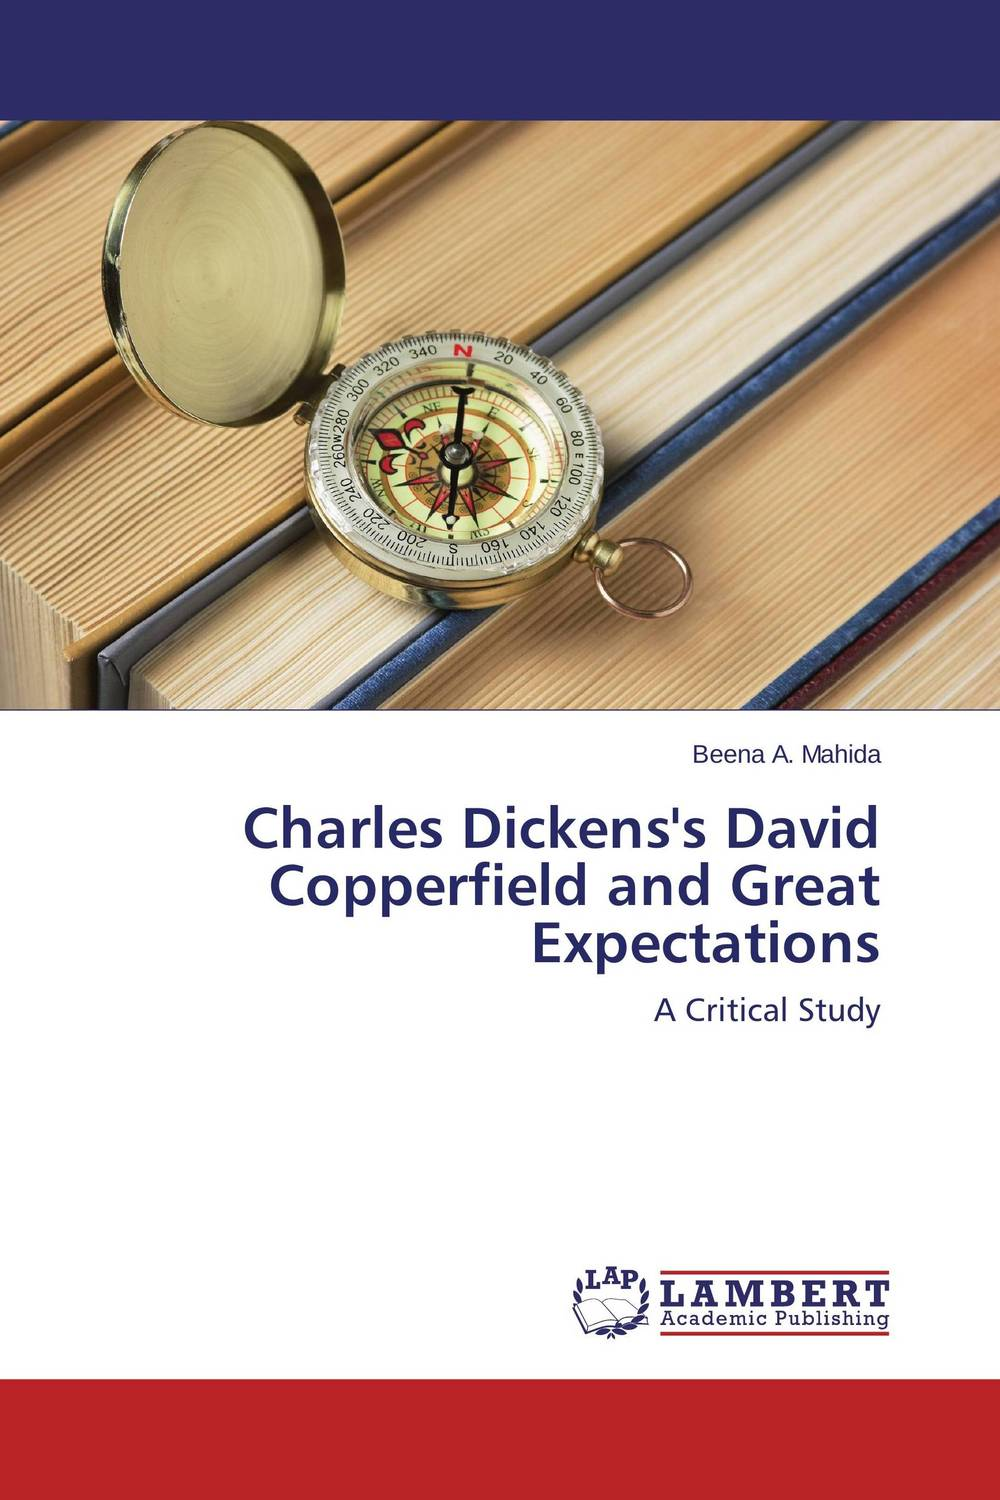 Charles Dickens's David Copperfield and Great Expectations david charles 419931